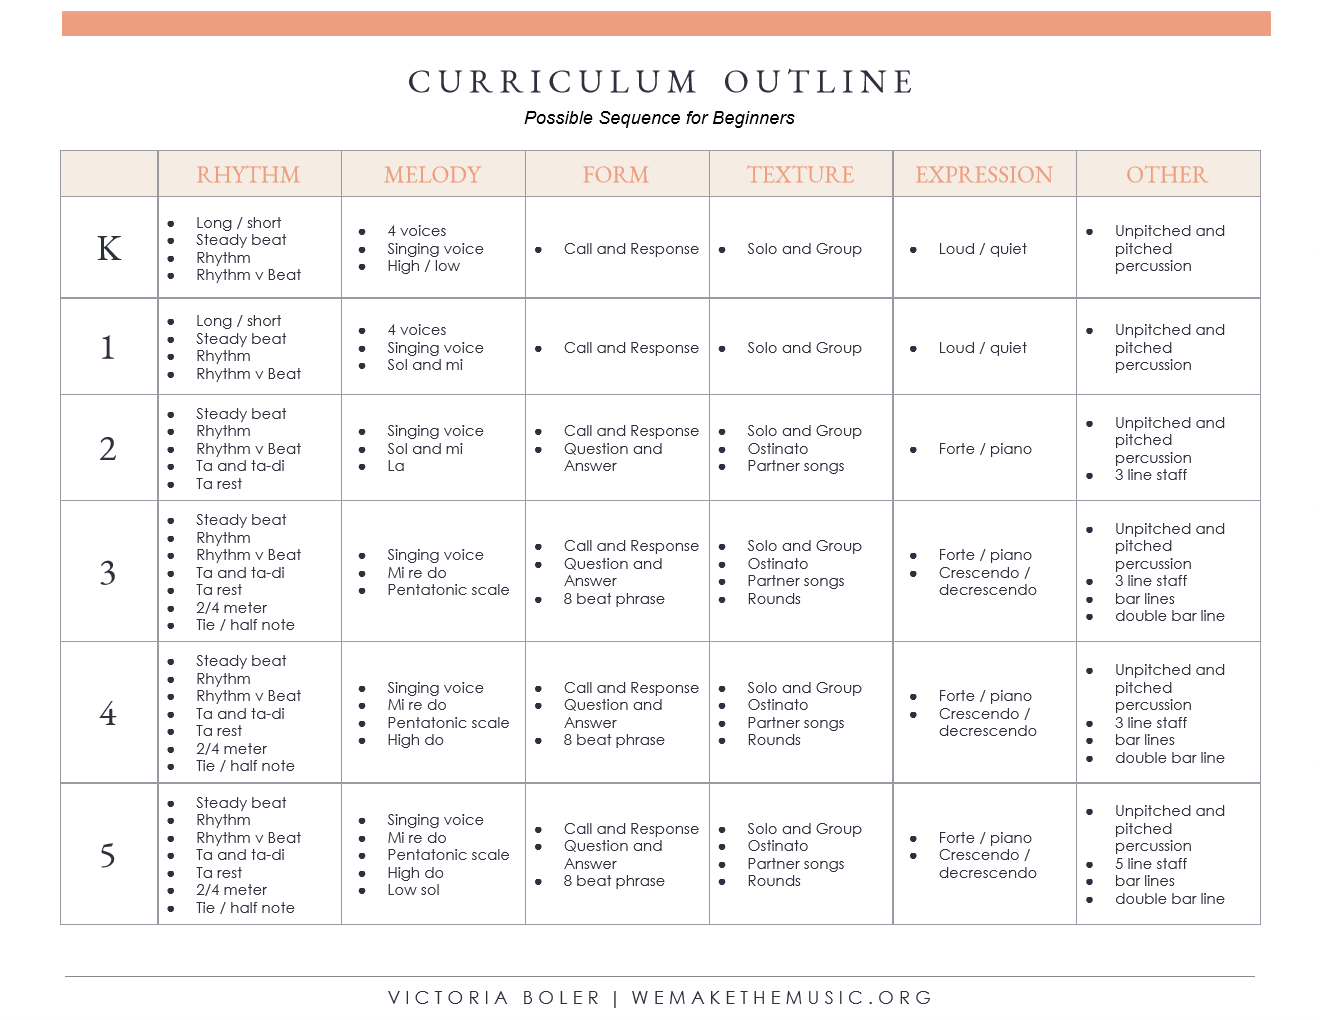 Possible Curriculum Outline for Beginners